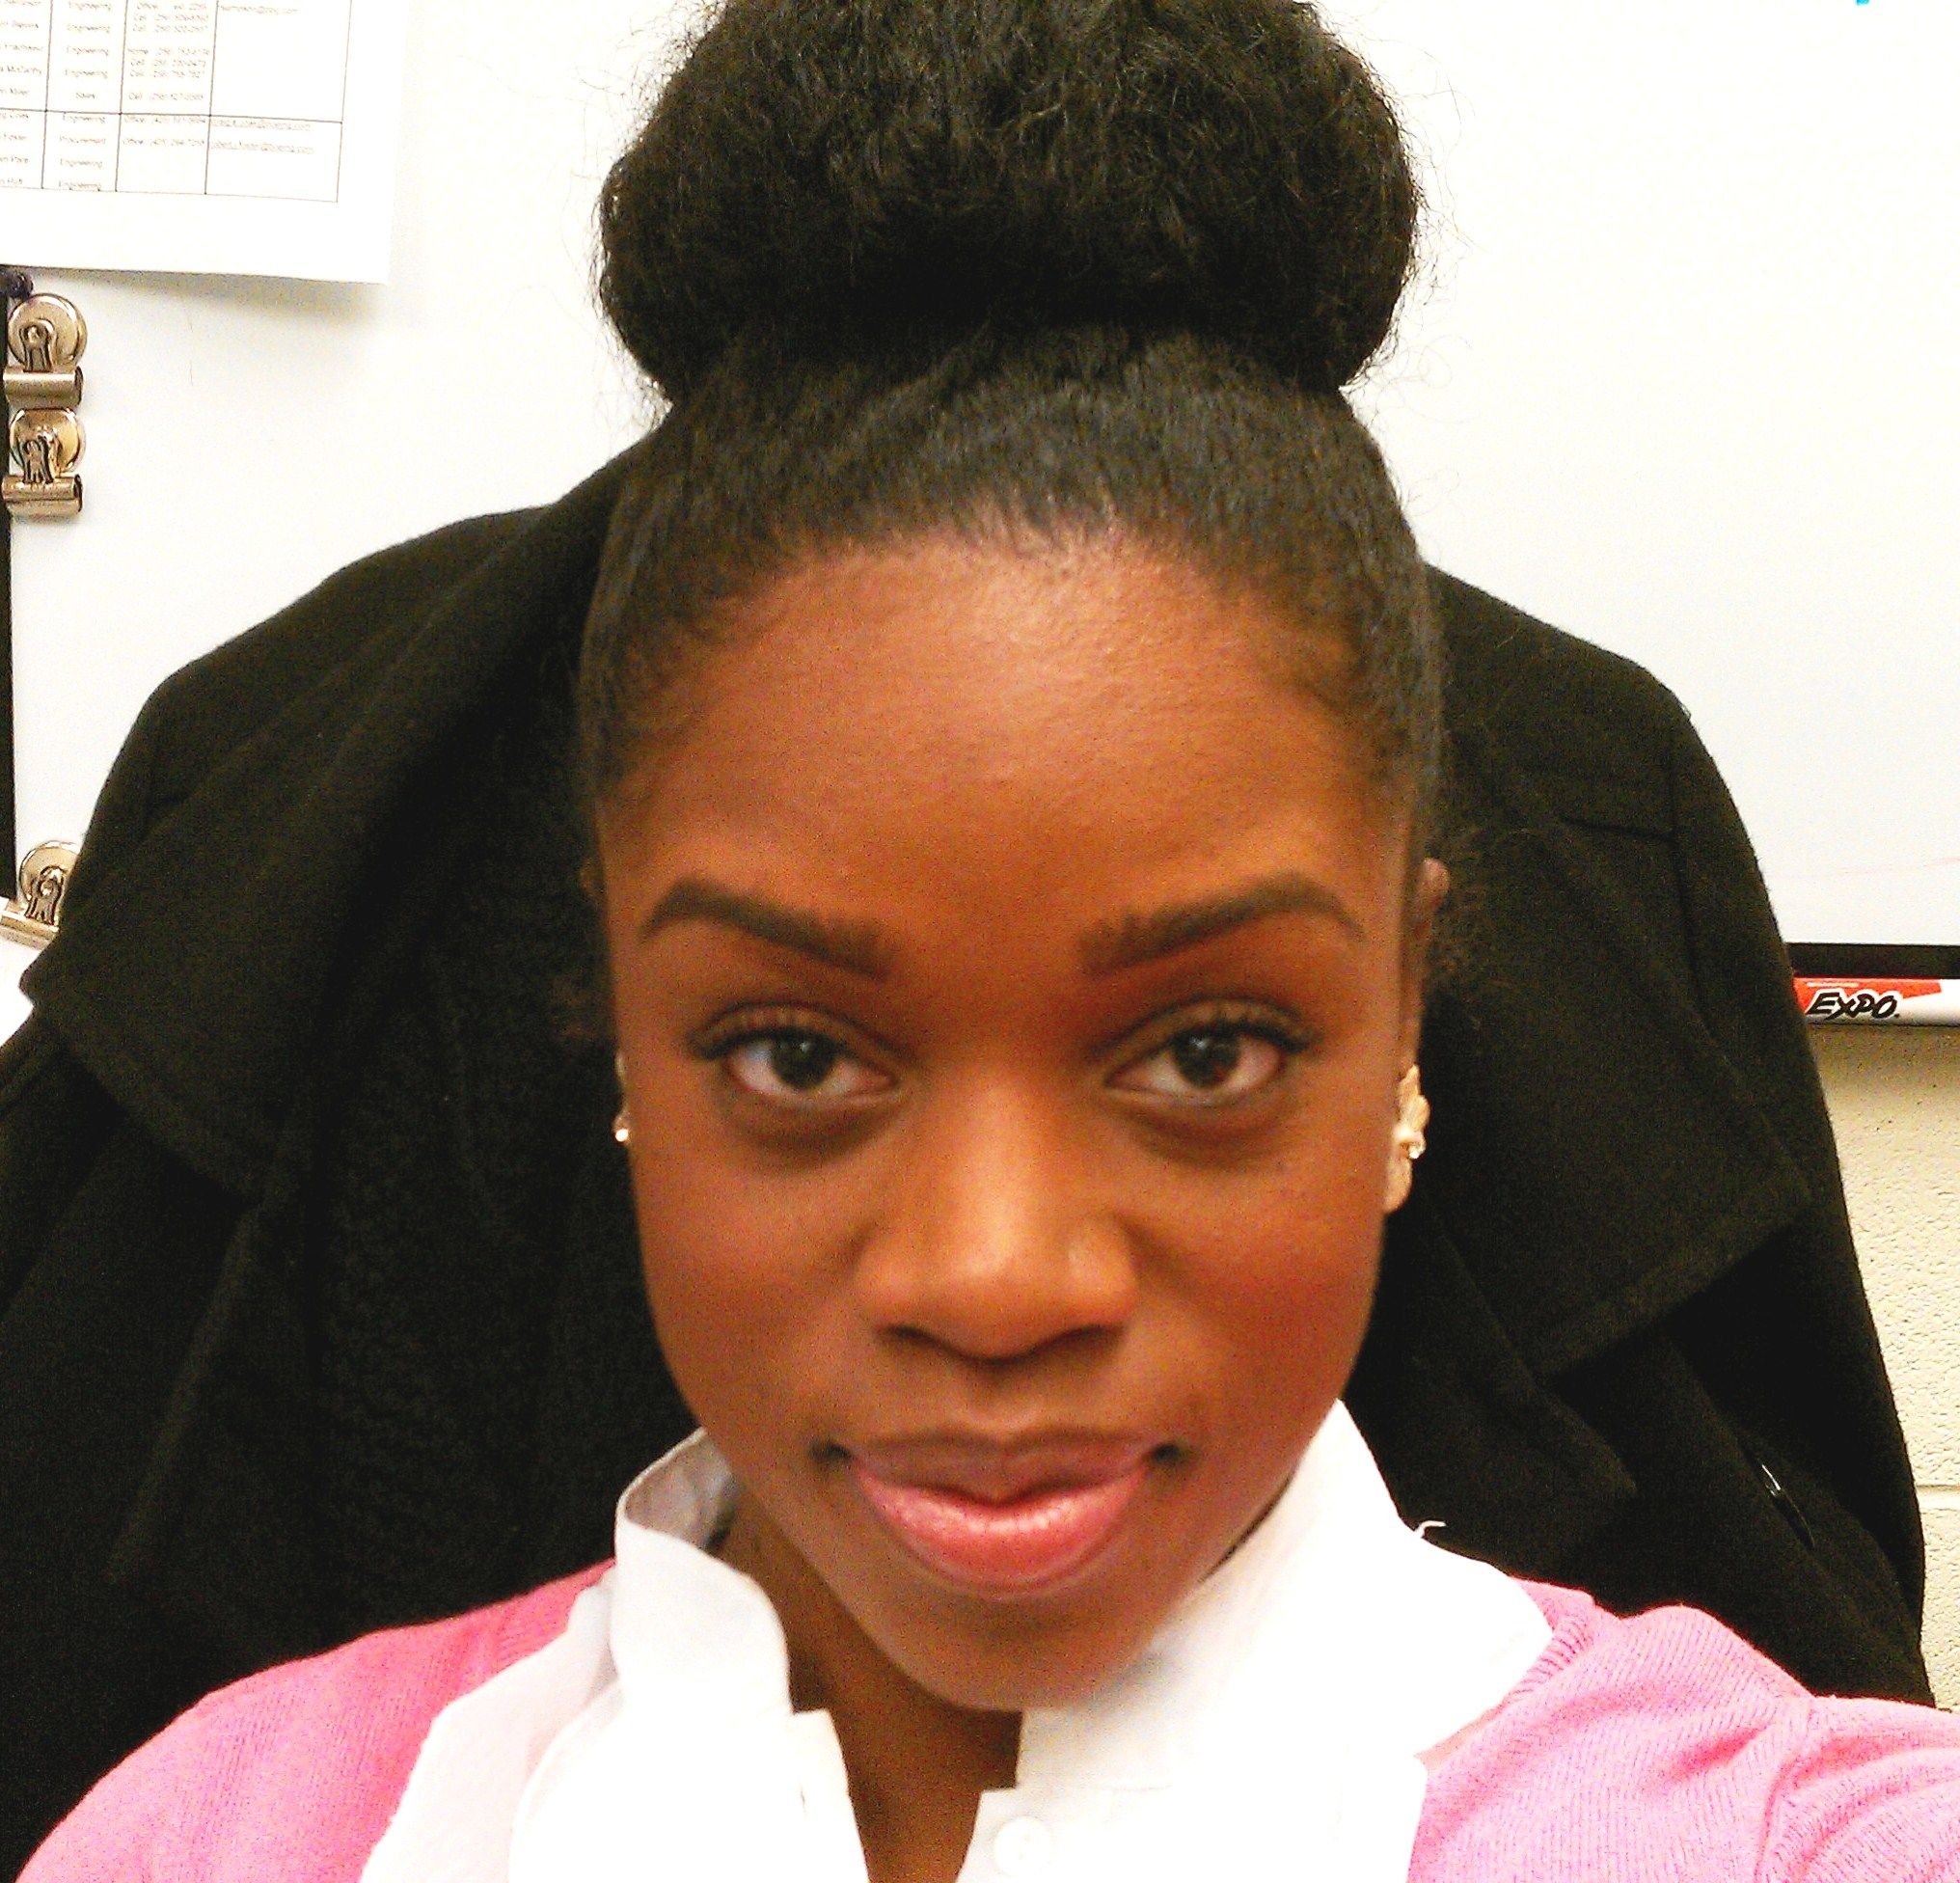 Natural Hairstyles For Job Interviews Captivating Job Interview Hairstyles For Natural Hair  Google Search